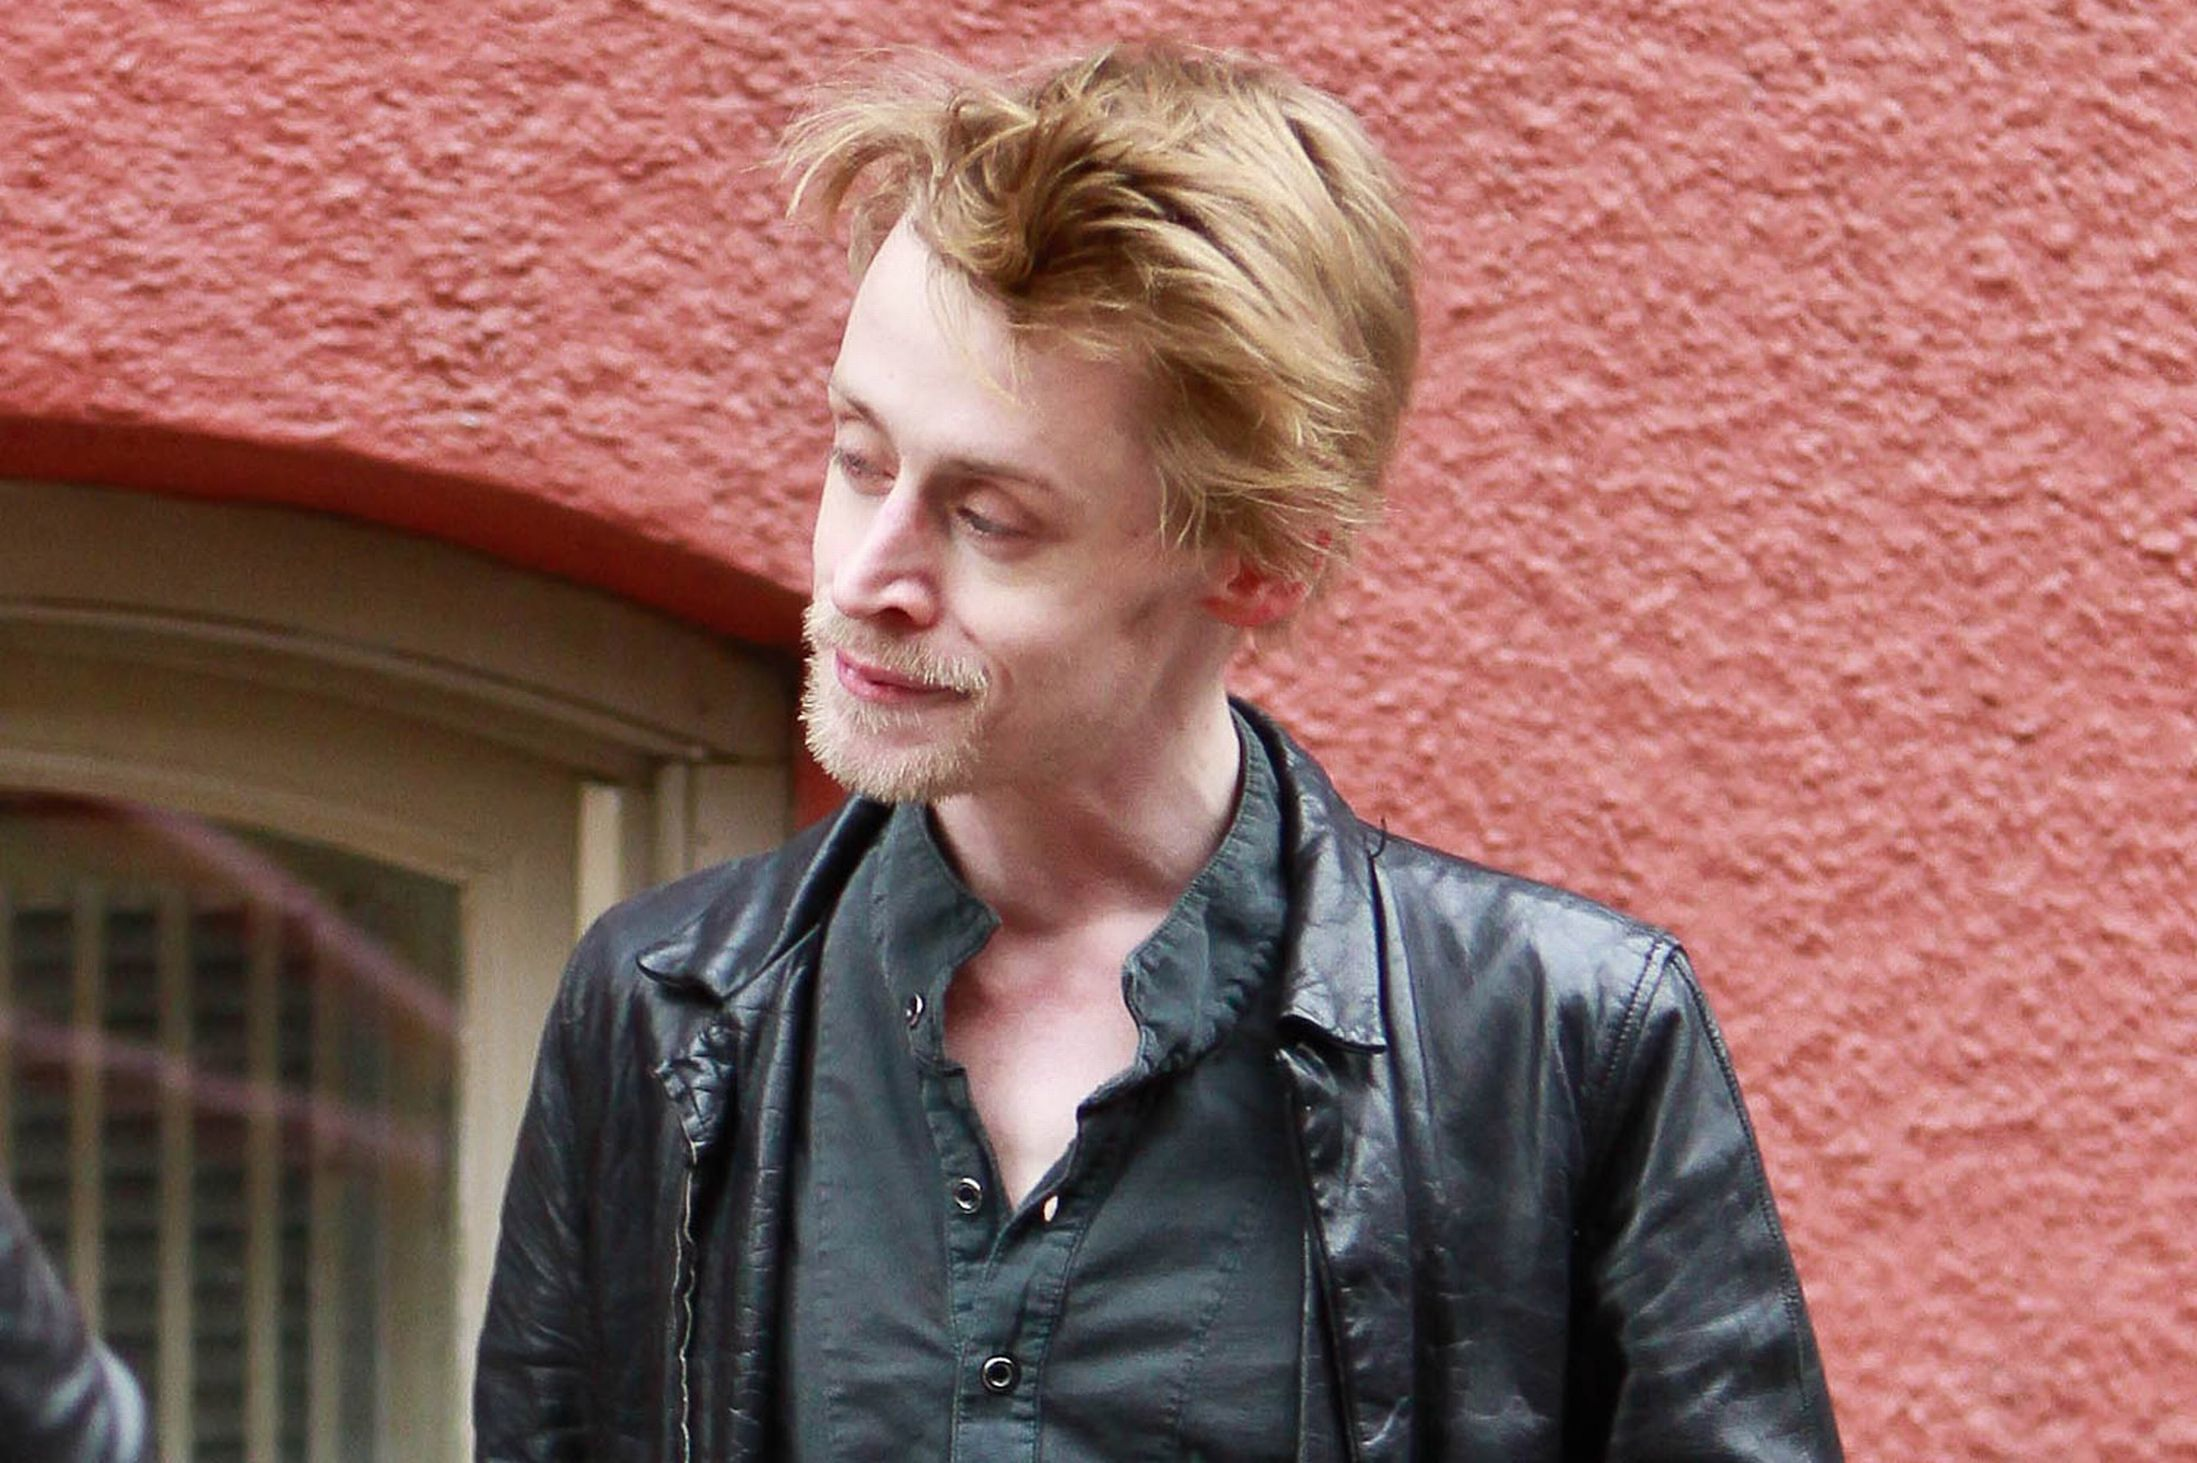 macaulay-culkin-i-bet-you-can-t-guess-what-macaulay-culkin-s-been-up-to-recently-jpeg-223591